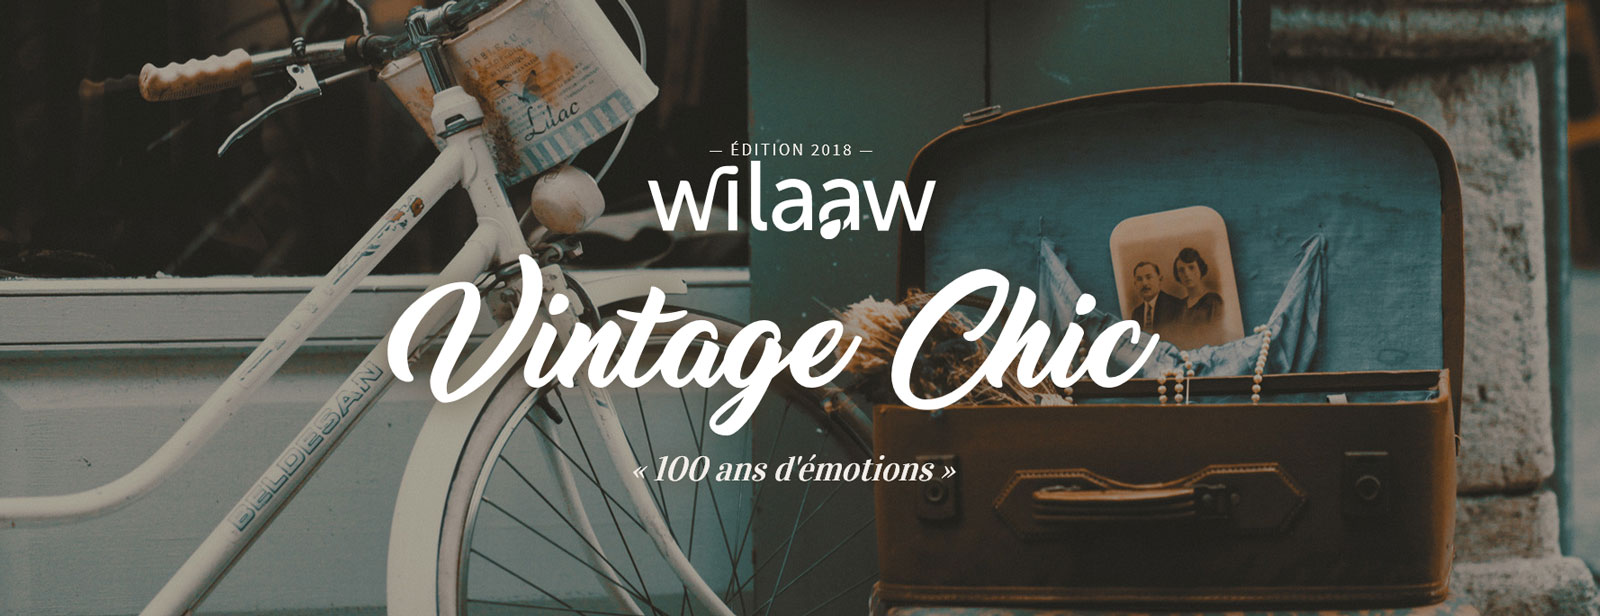 vintage chic wilaaw